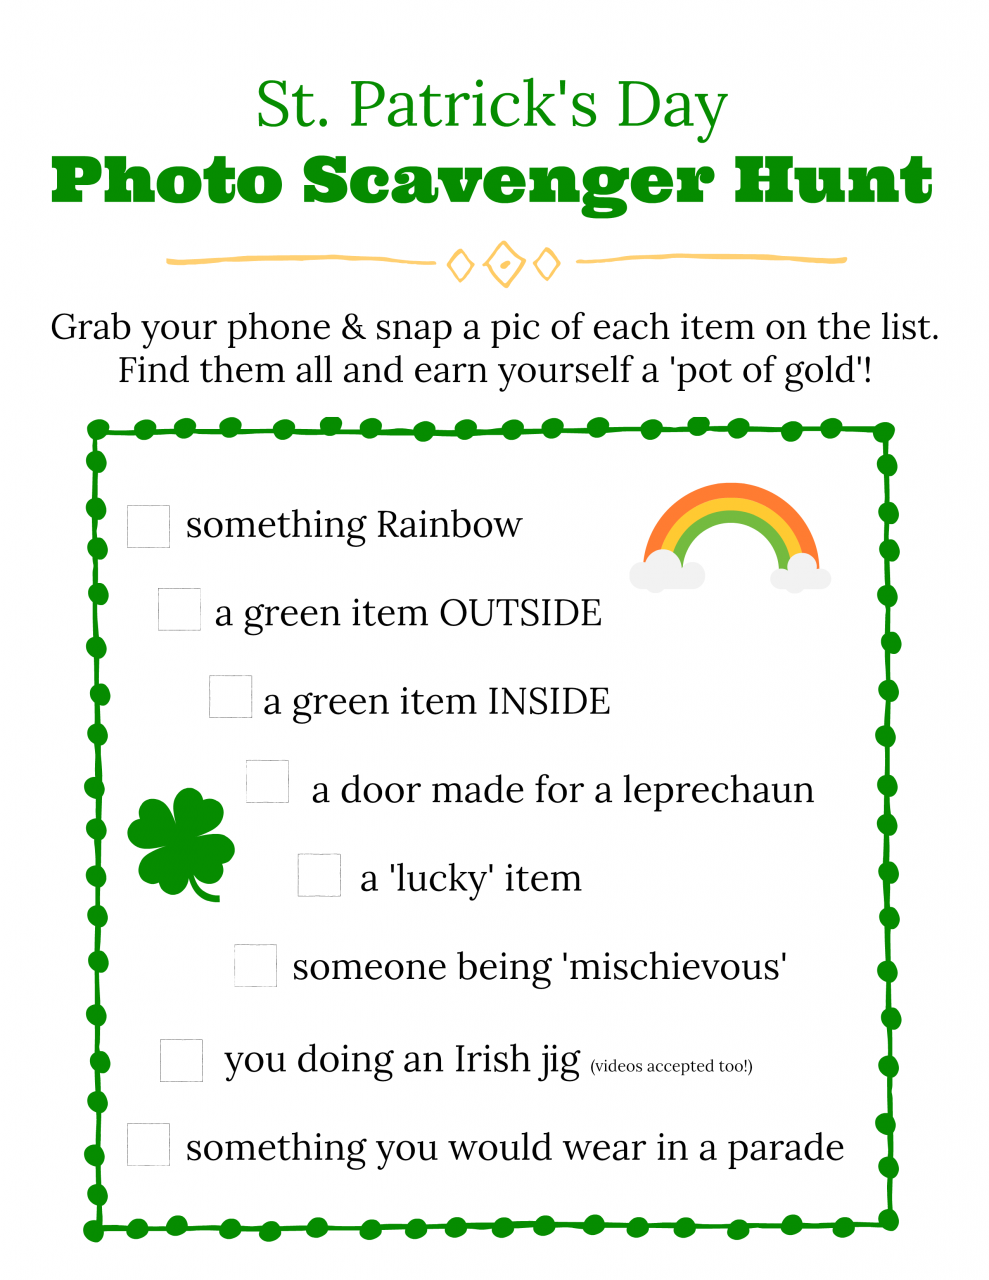 Free St Patricks Day scavenger hunt clues